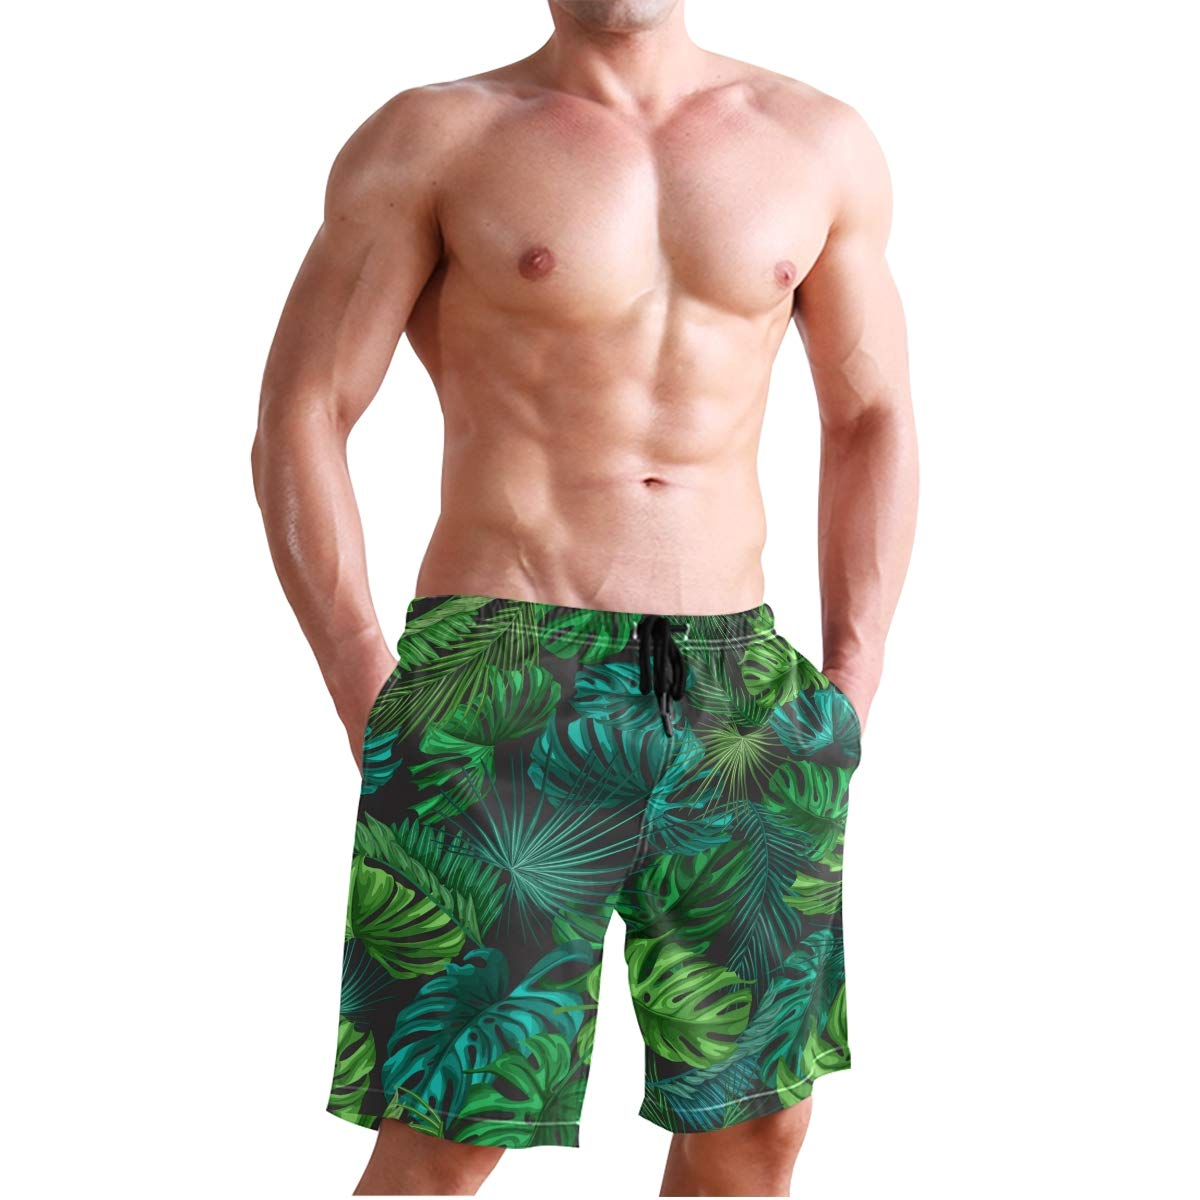 KUWT Mens Swim Trunks Tropical Palm Leaves Quick Dry Beach Shorts Summer Surf Board Shorts